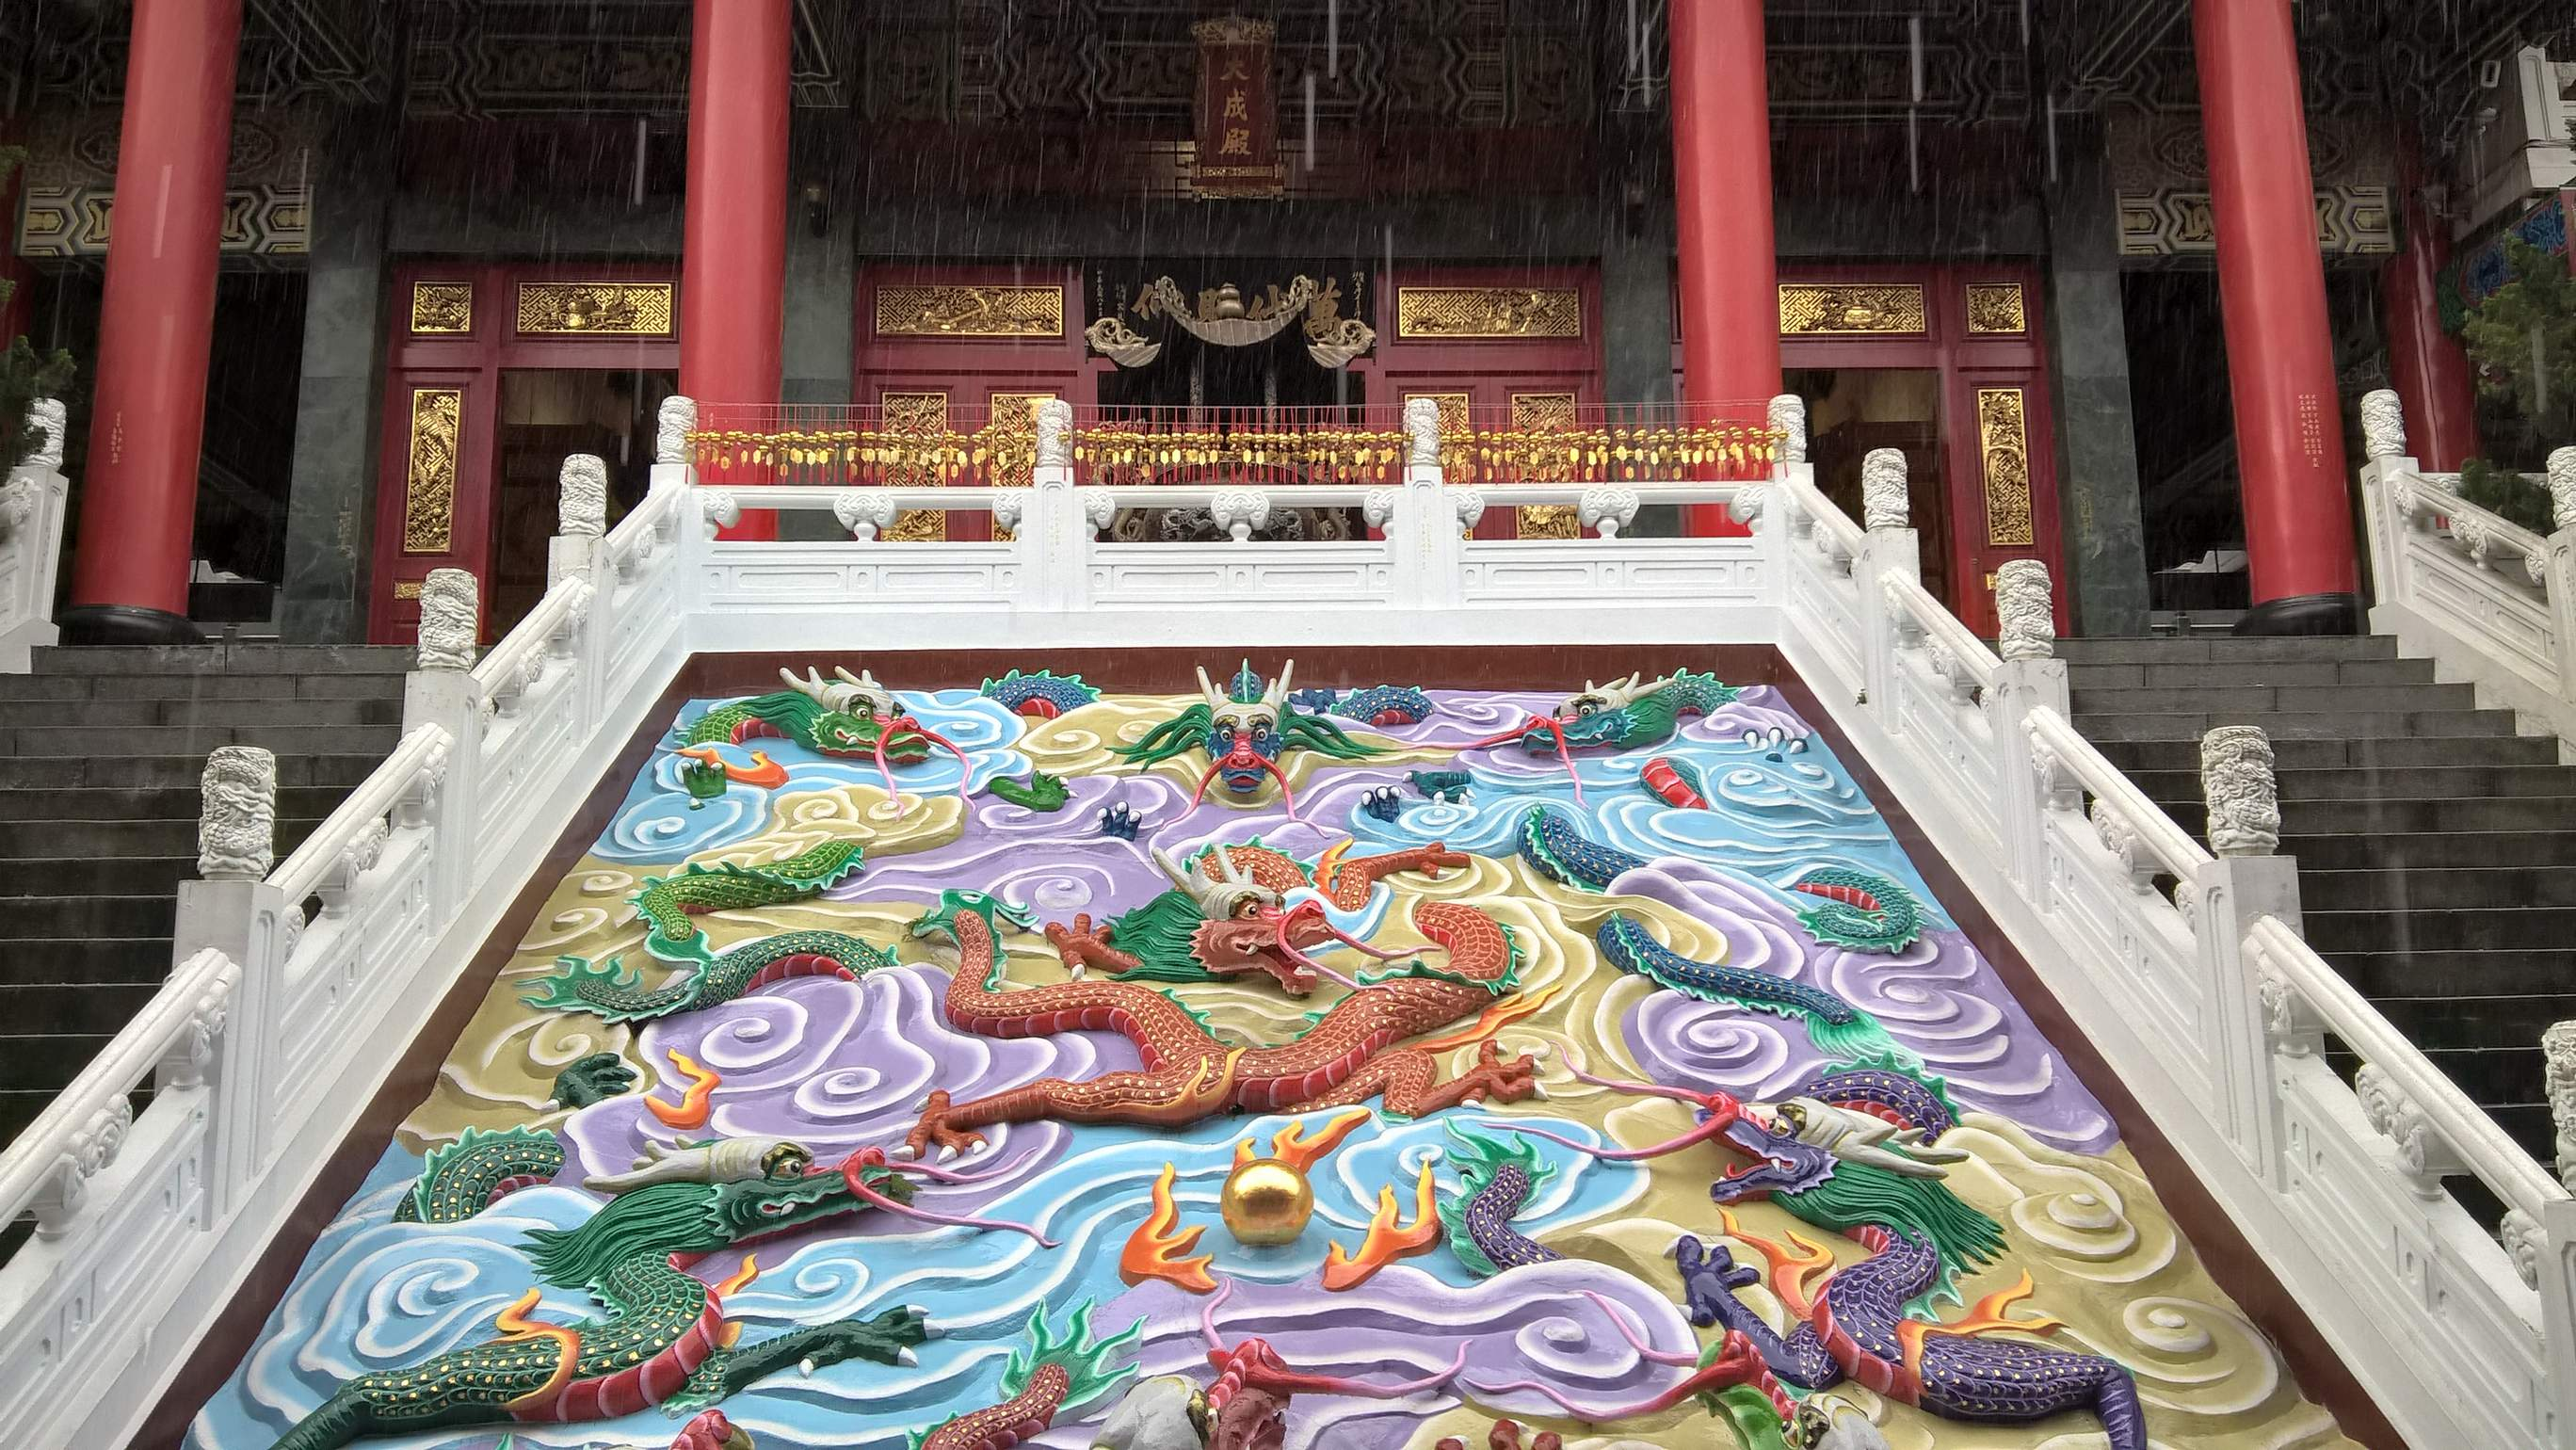 Outdoor painted carvings of dragons at the Wen Wu Temple in Yuchi Township, Taiwan.